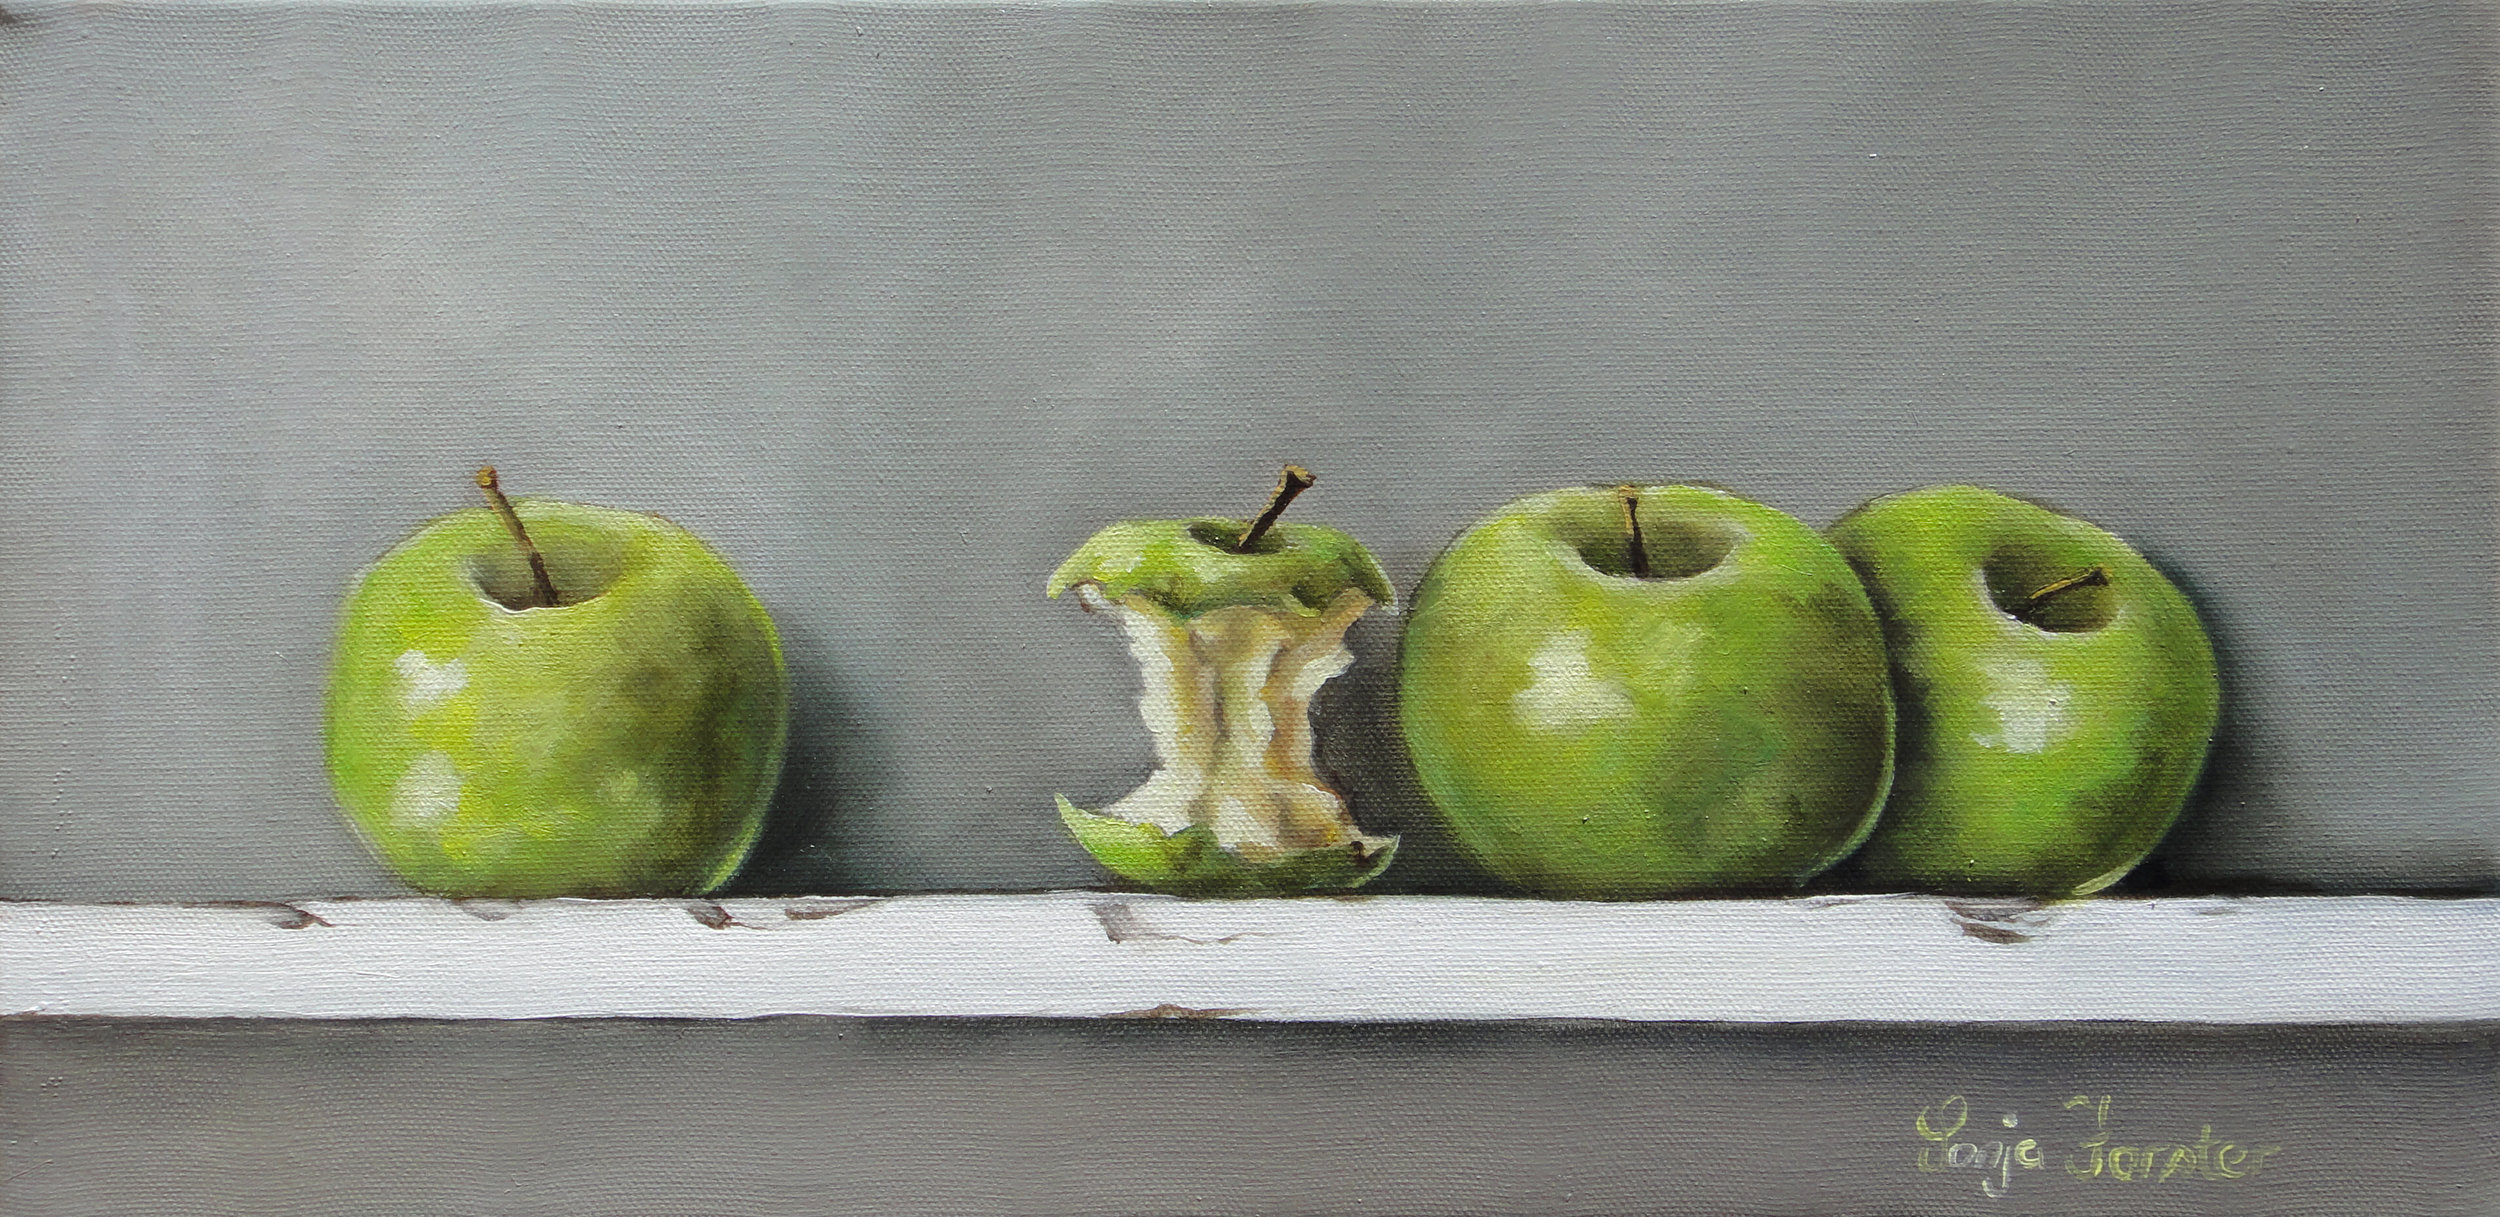 Sonja Forster Art - Apple a Day